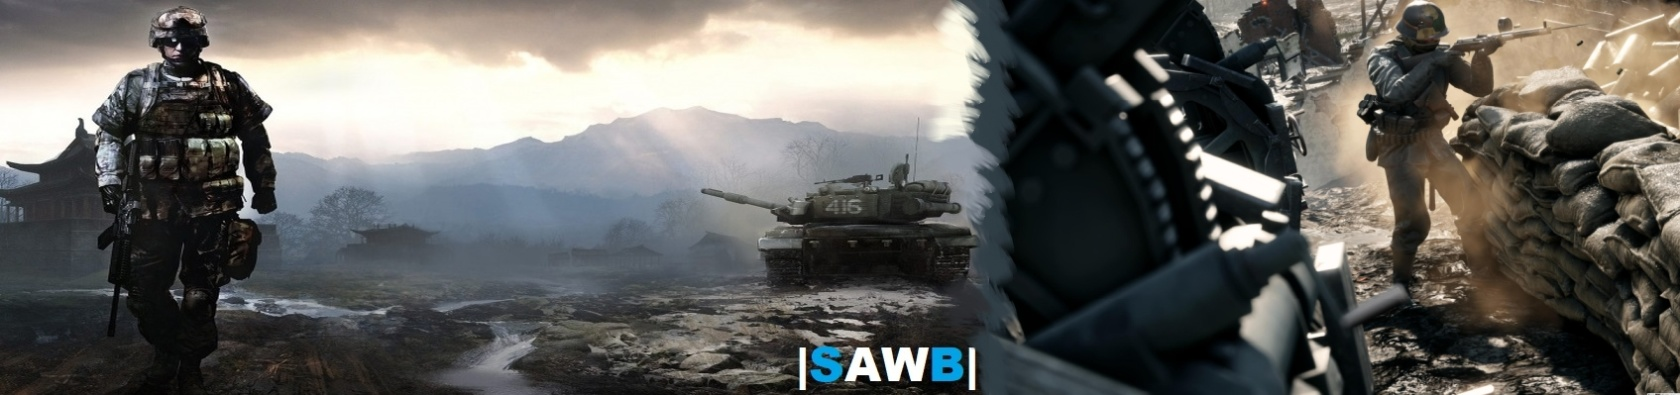 |SAWB| Battlefield & CALL OF DUTY CLAN